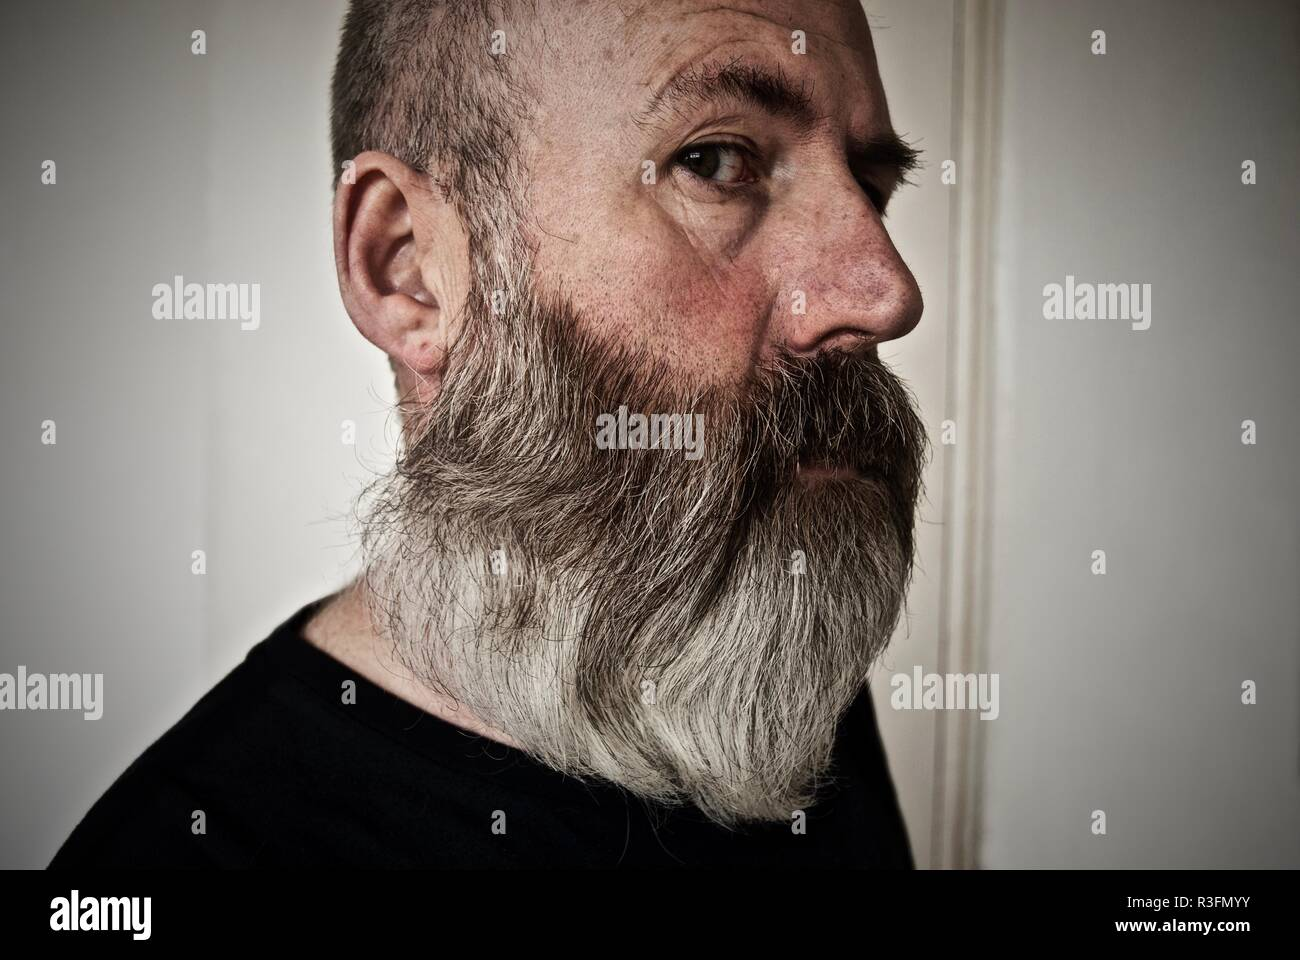 Middle Aged Hipster Photos   Middle Aged Hipster Images - Alamy dd5c8e7bfd40